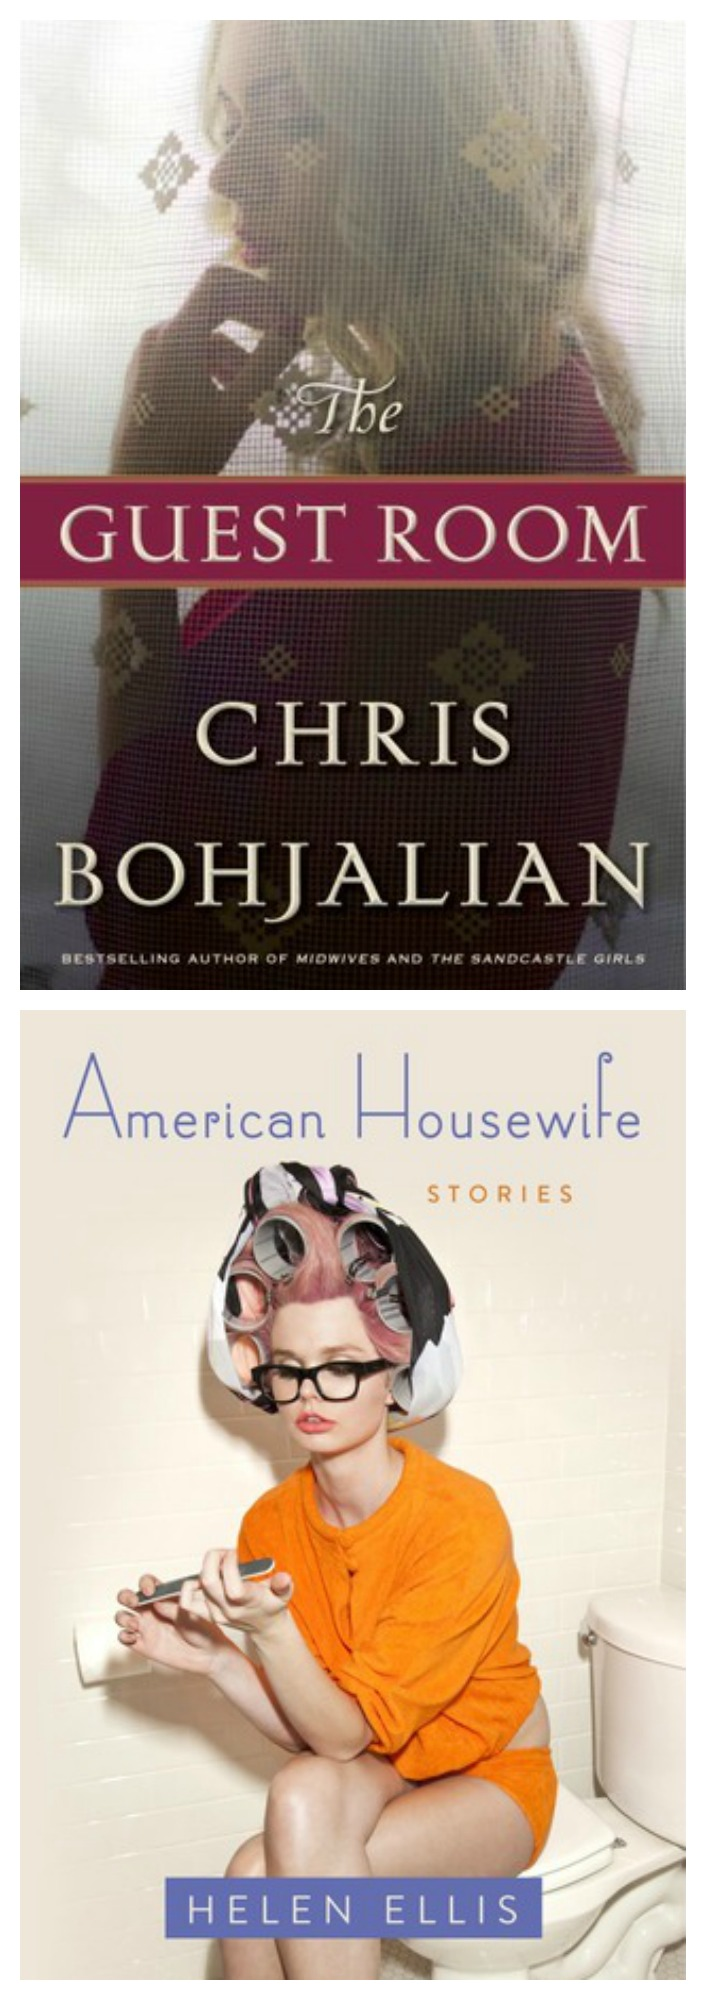 Mini reviews of Chris Bohjalian's The Guest Room (read it!) and American Housewife (skip it).